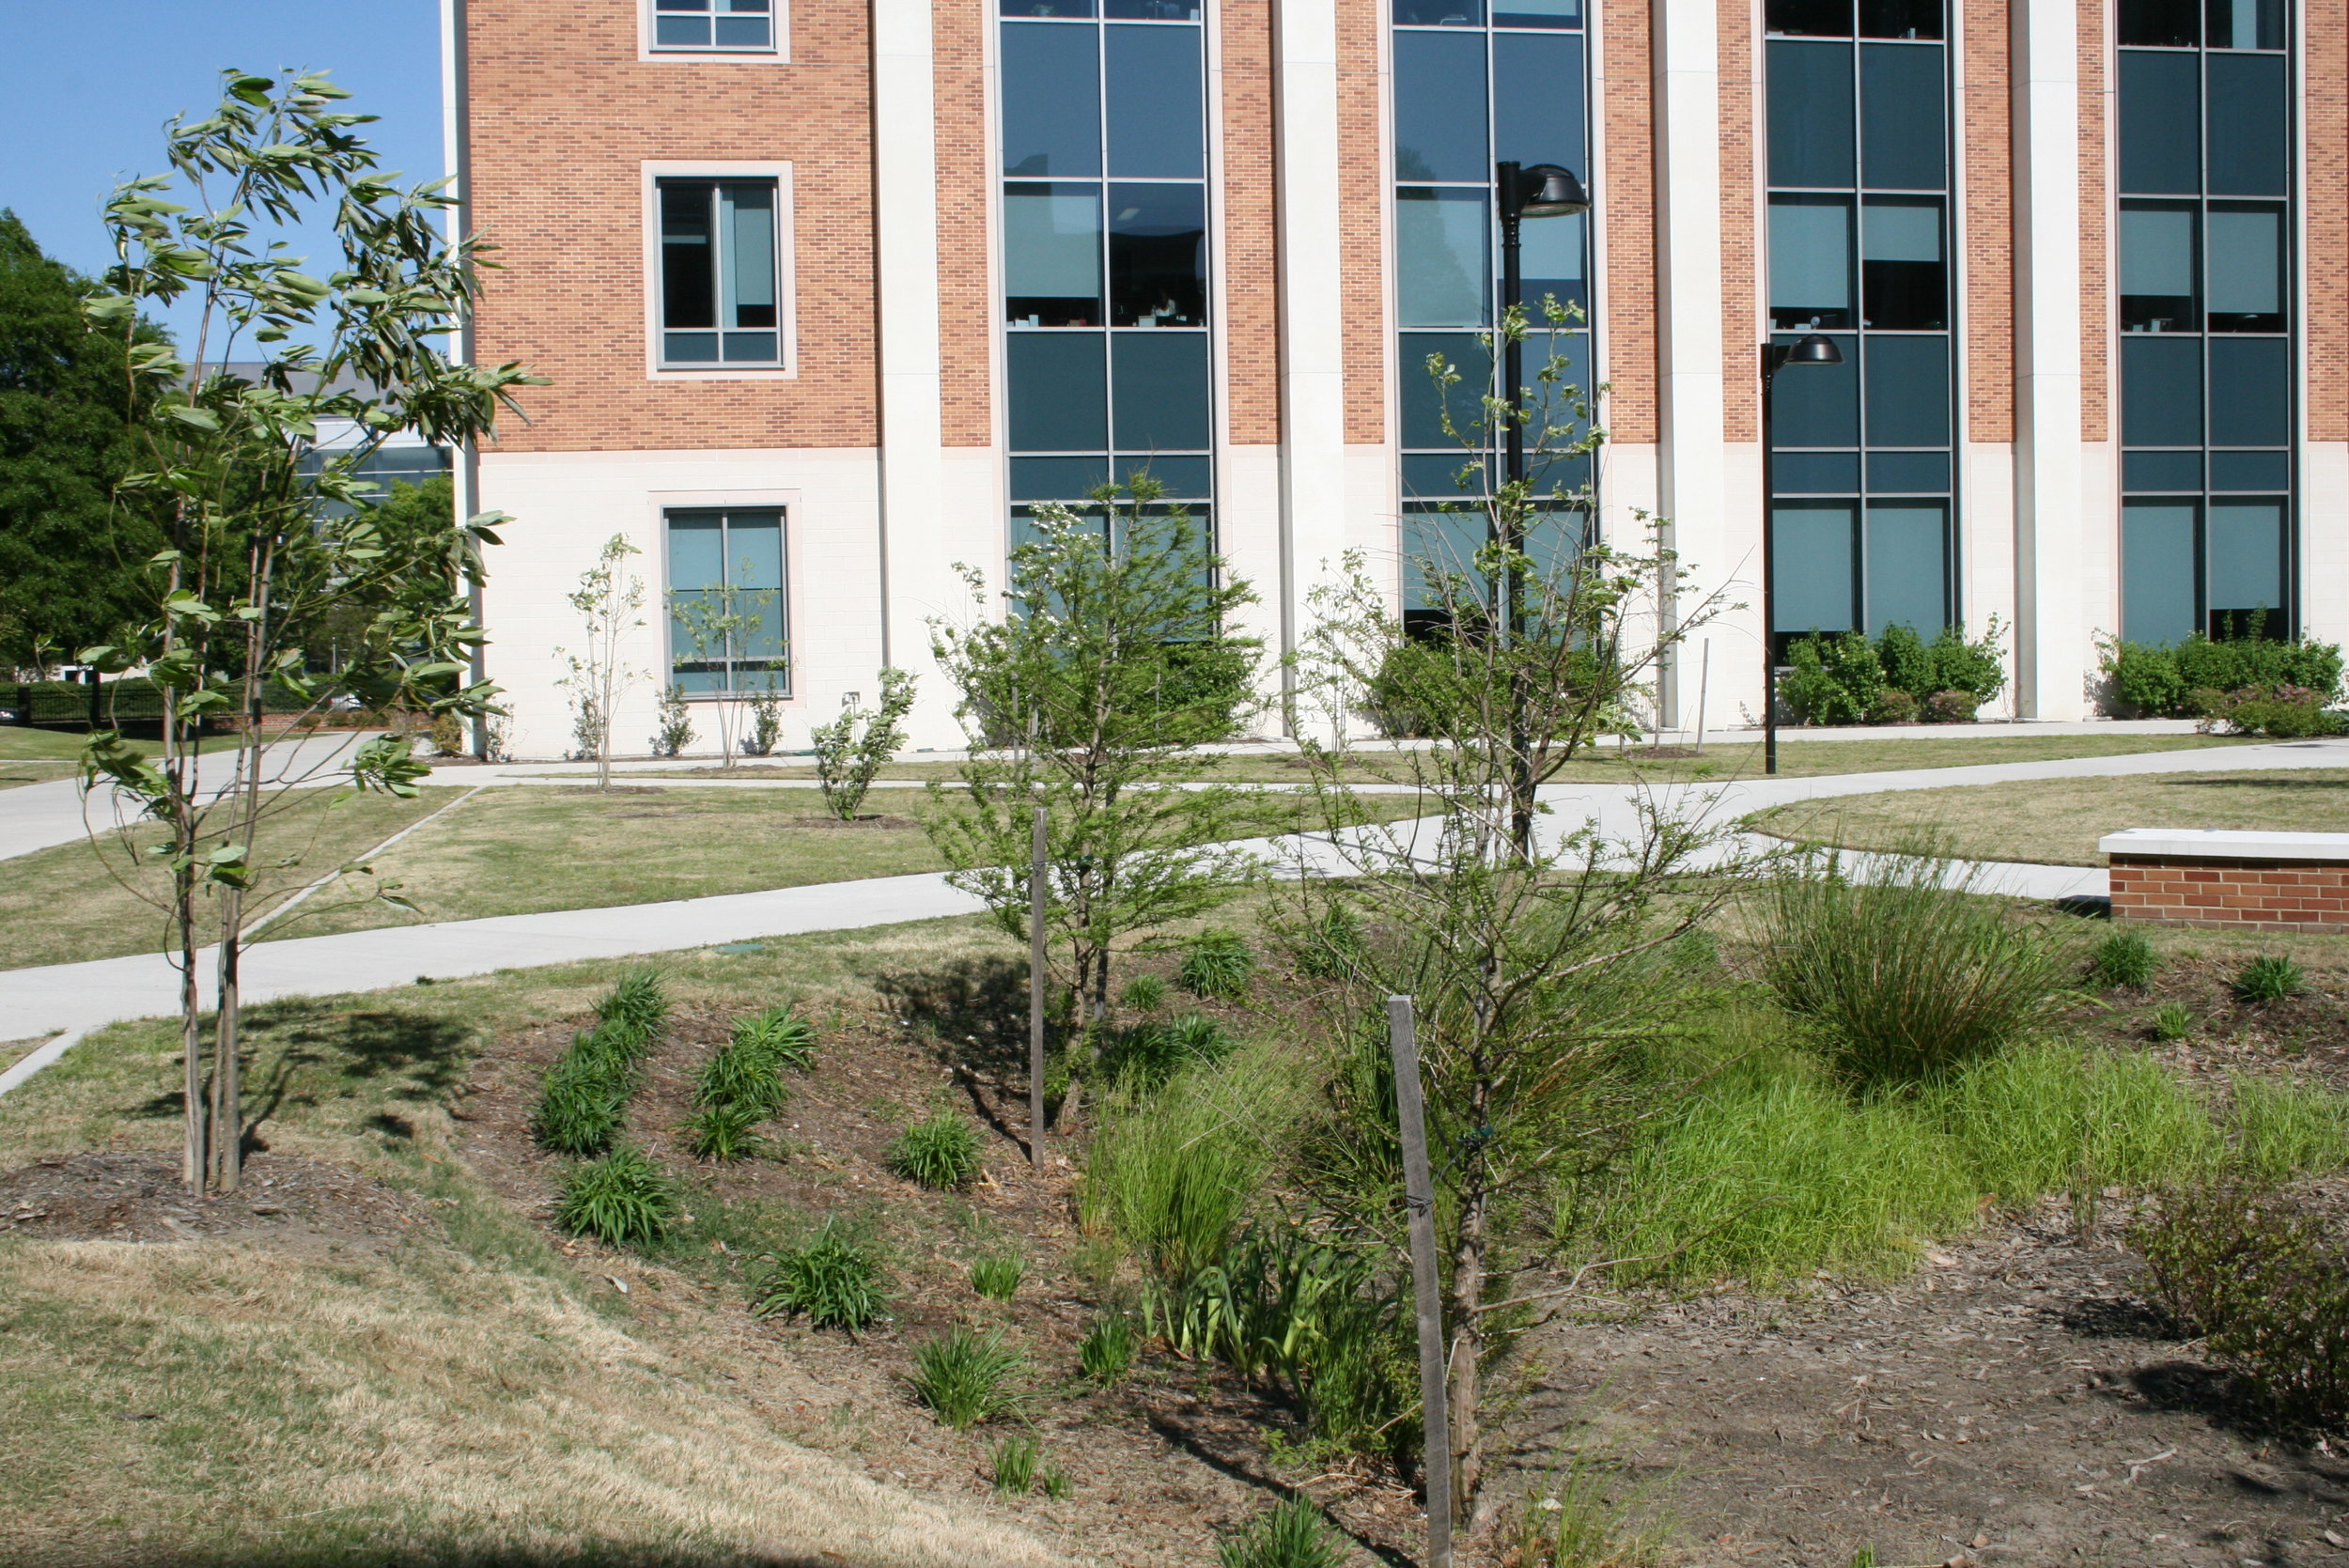 ODU: College of Education Building